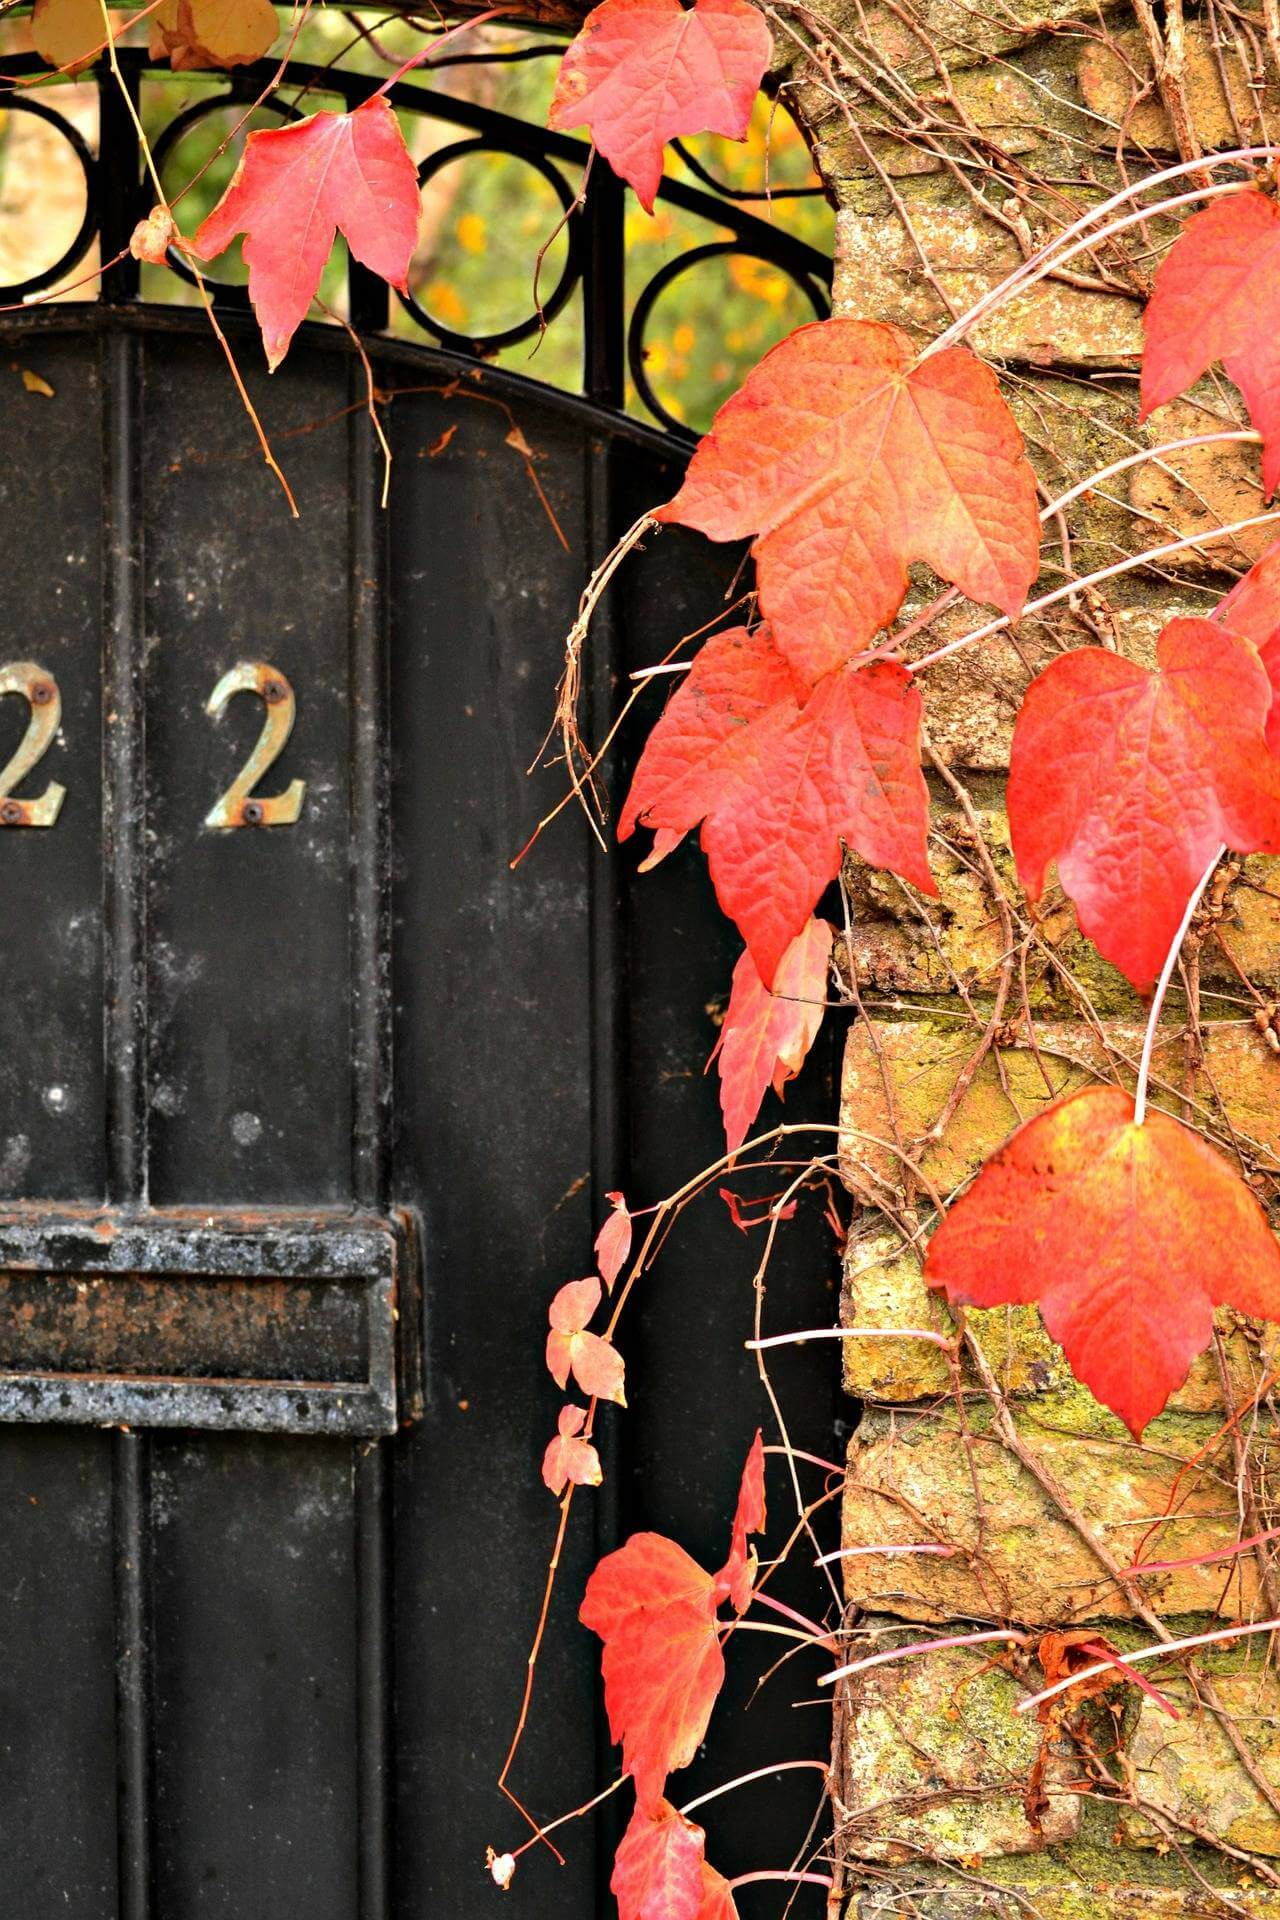 7 Tips For Prepping Your Home For Autumn and Beyond